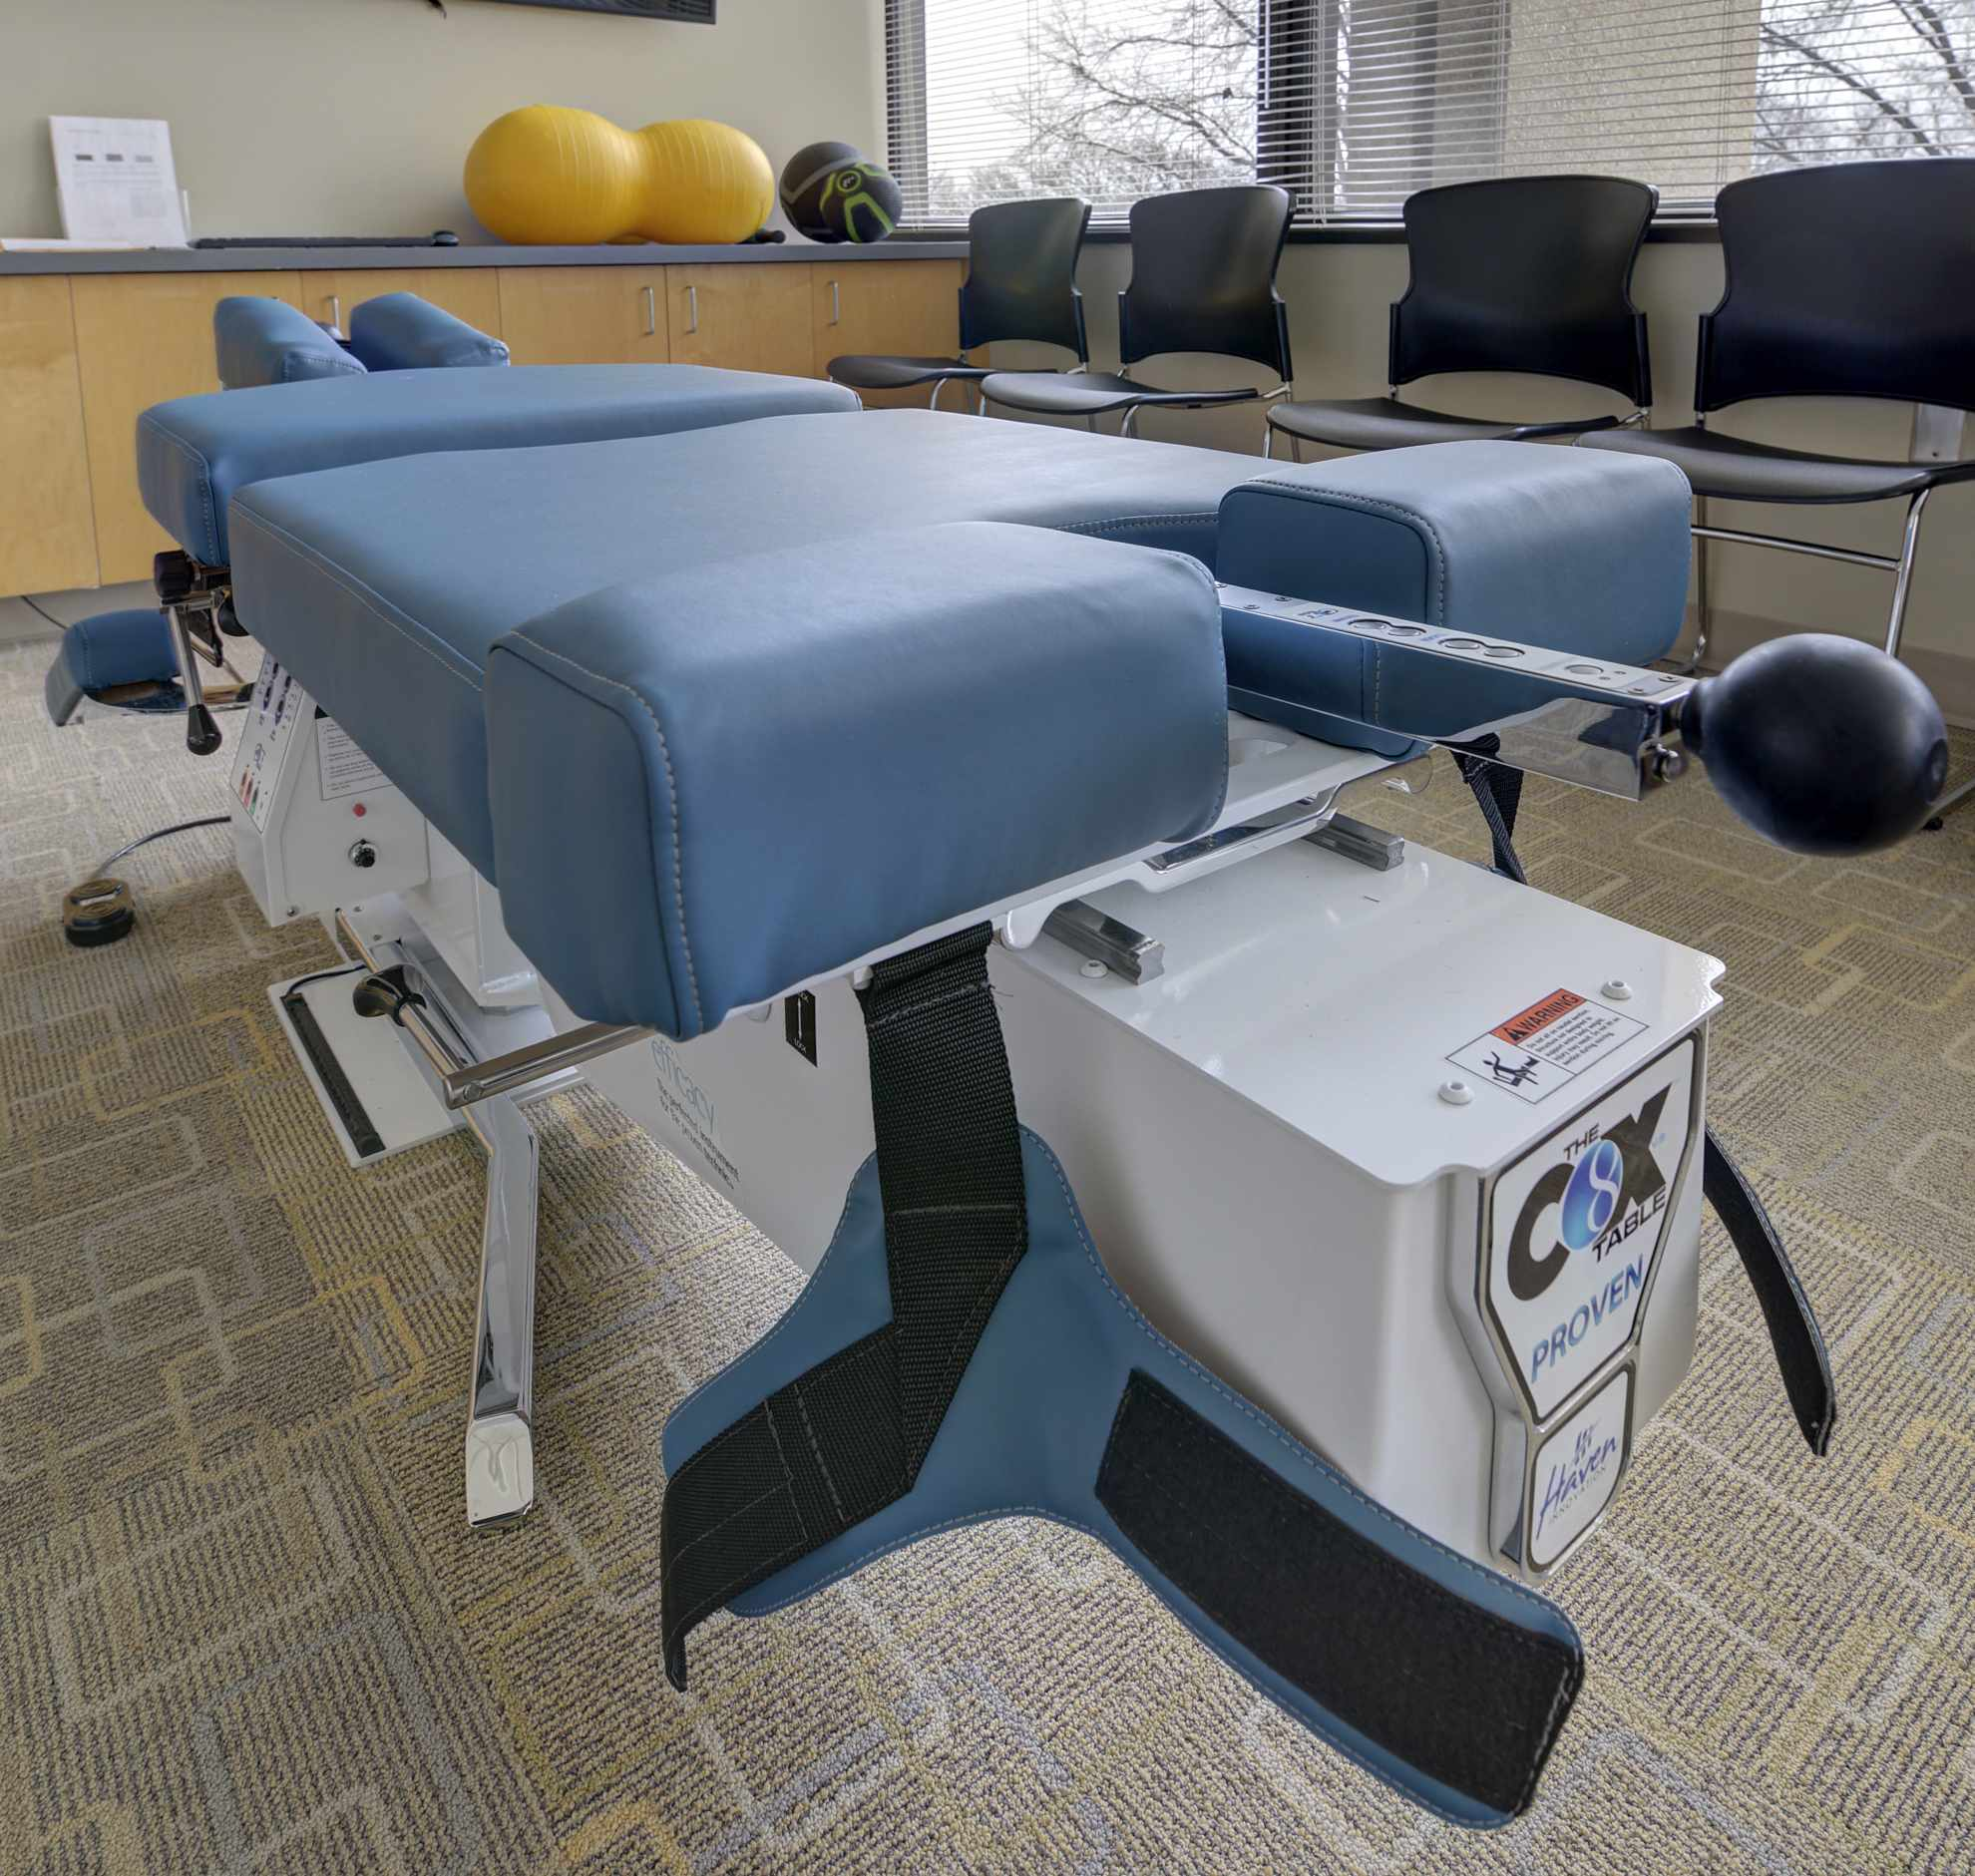 CUKC Receives New Cox Table Model 8